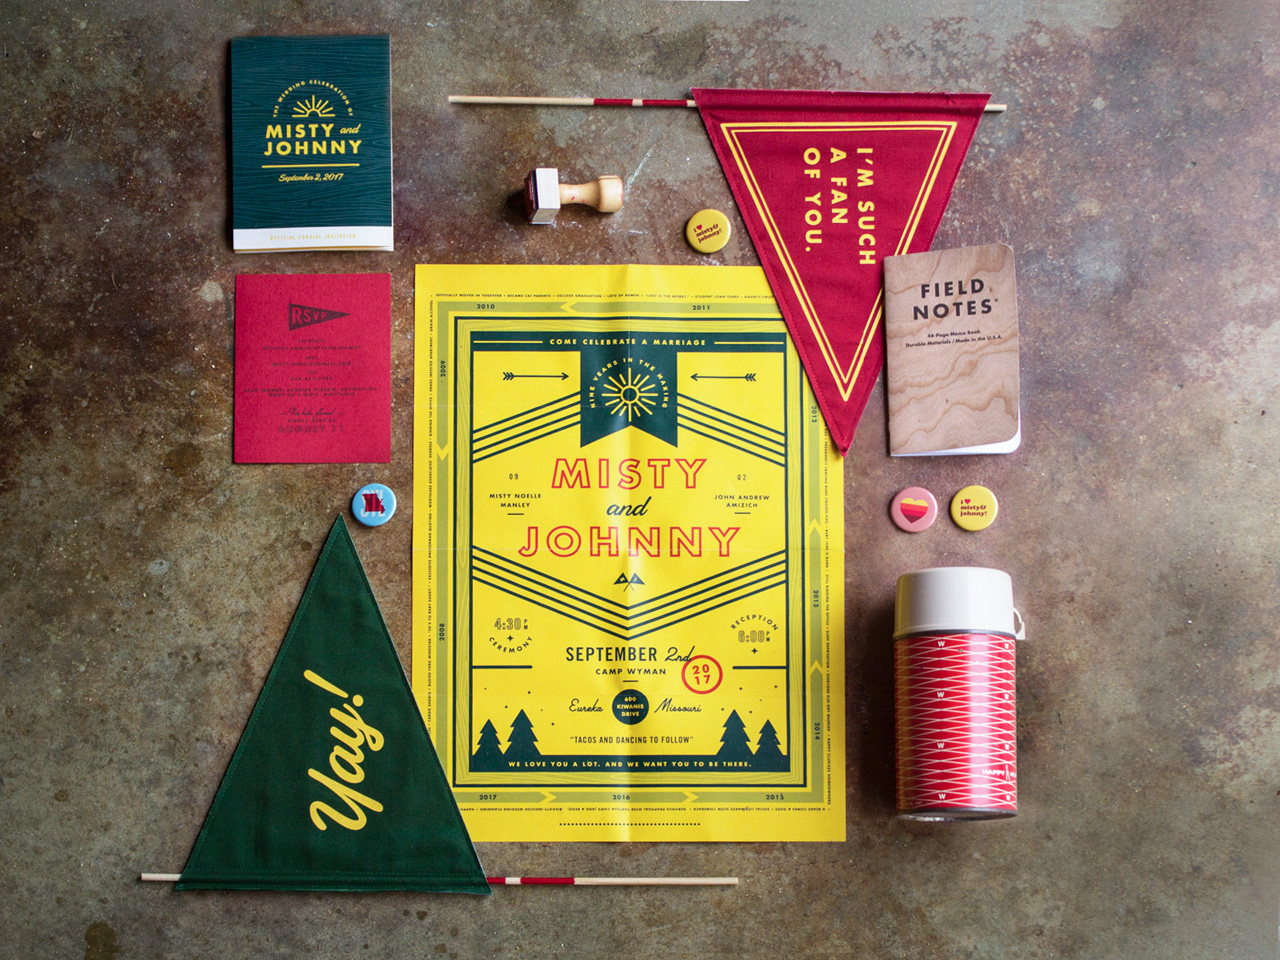 Quirky Camp-Theme Wedding Invitations by Misty Manley